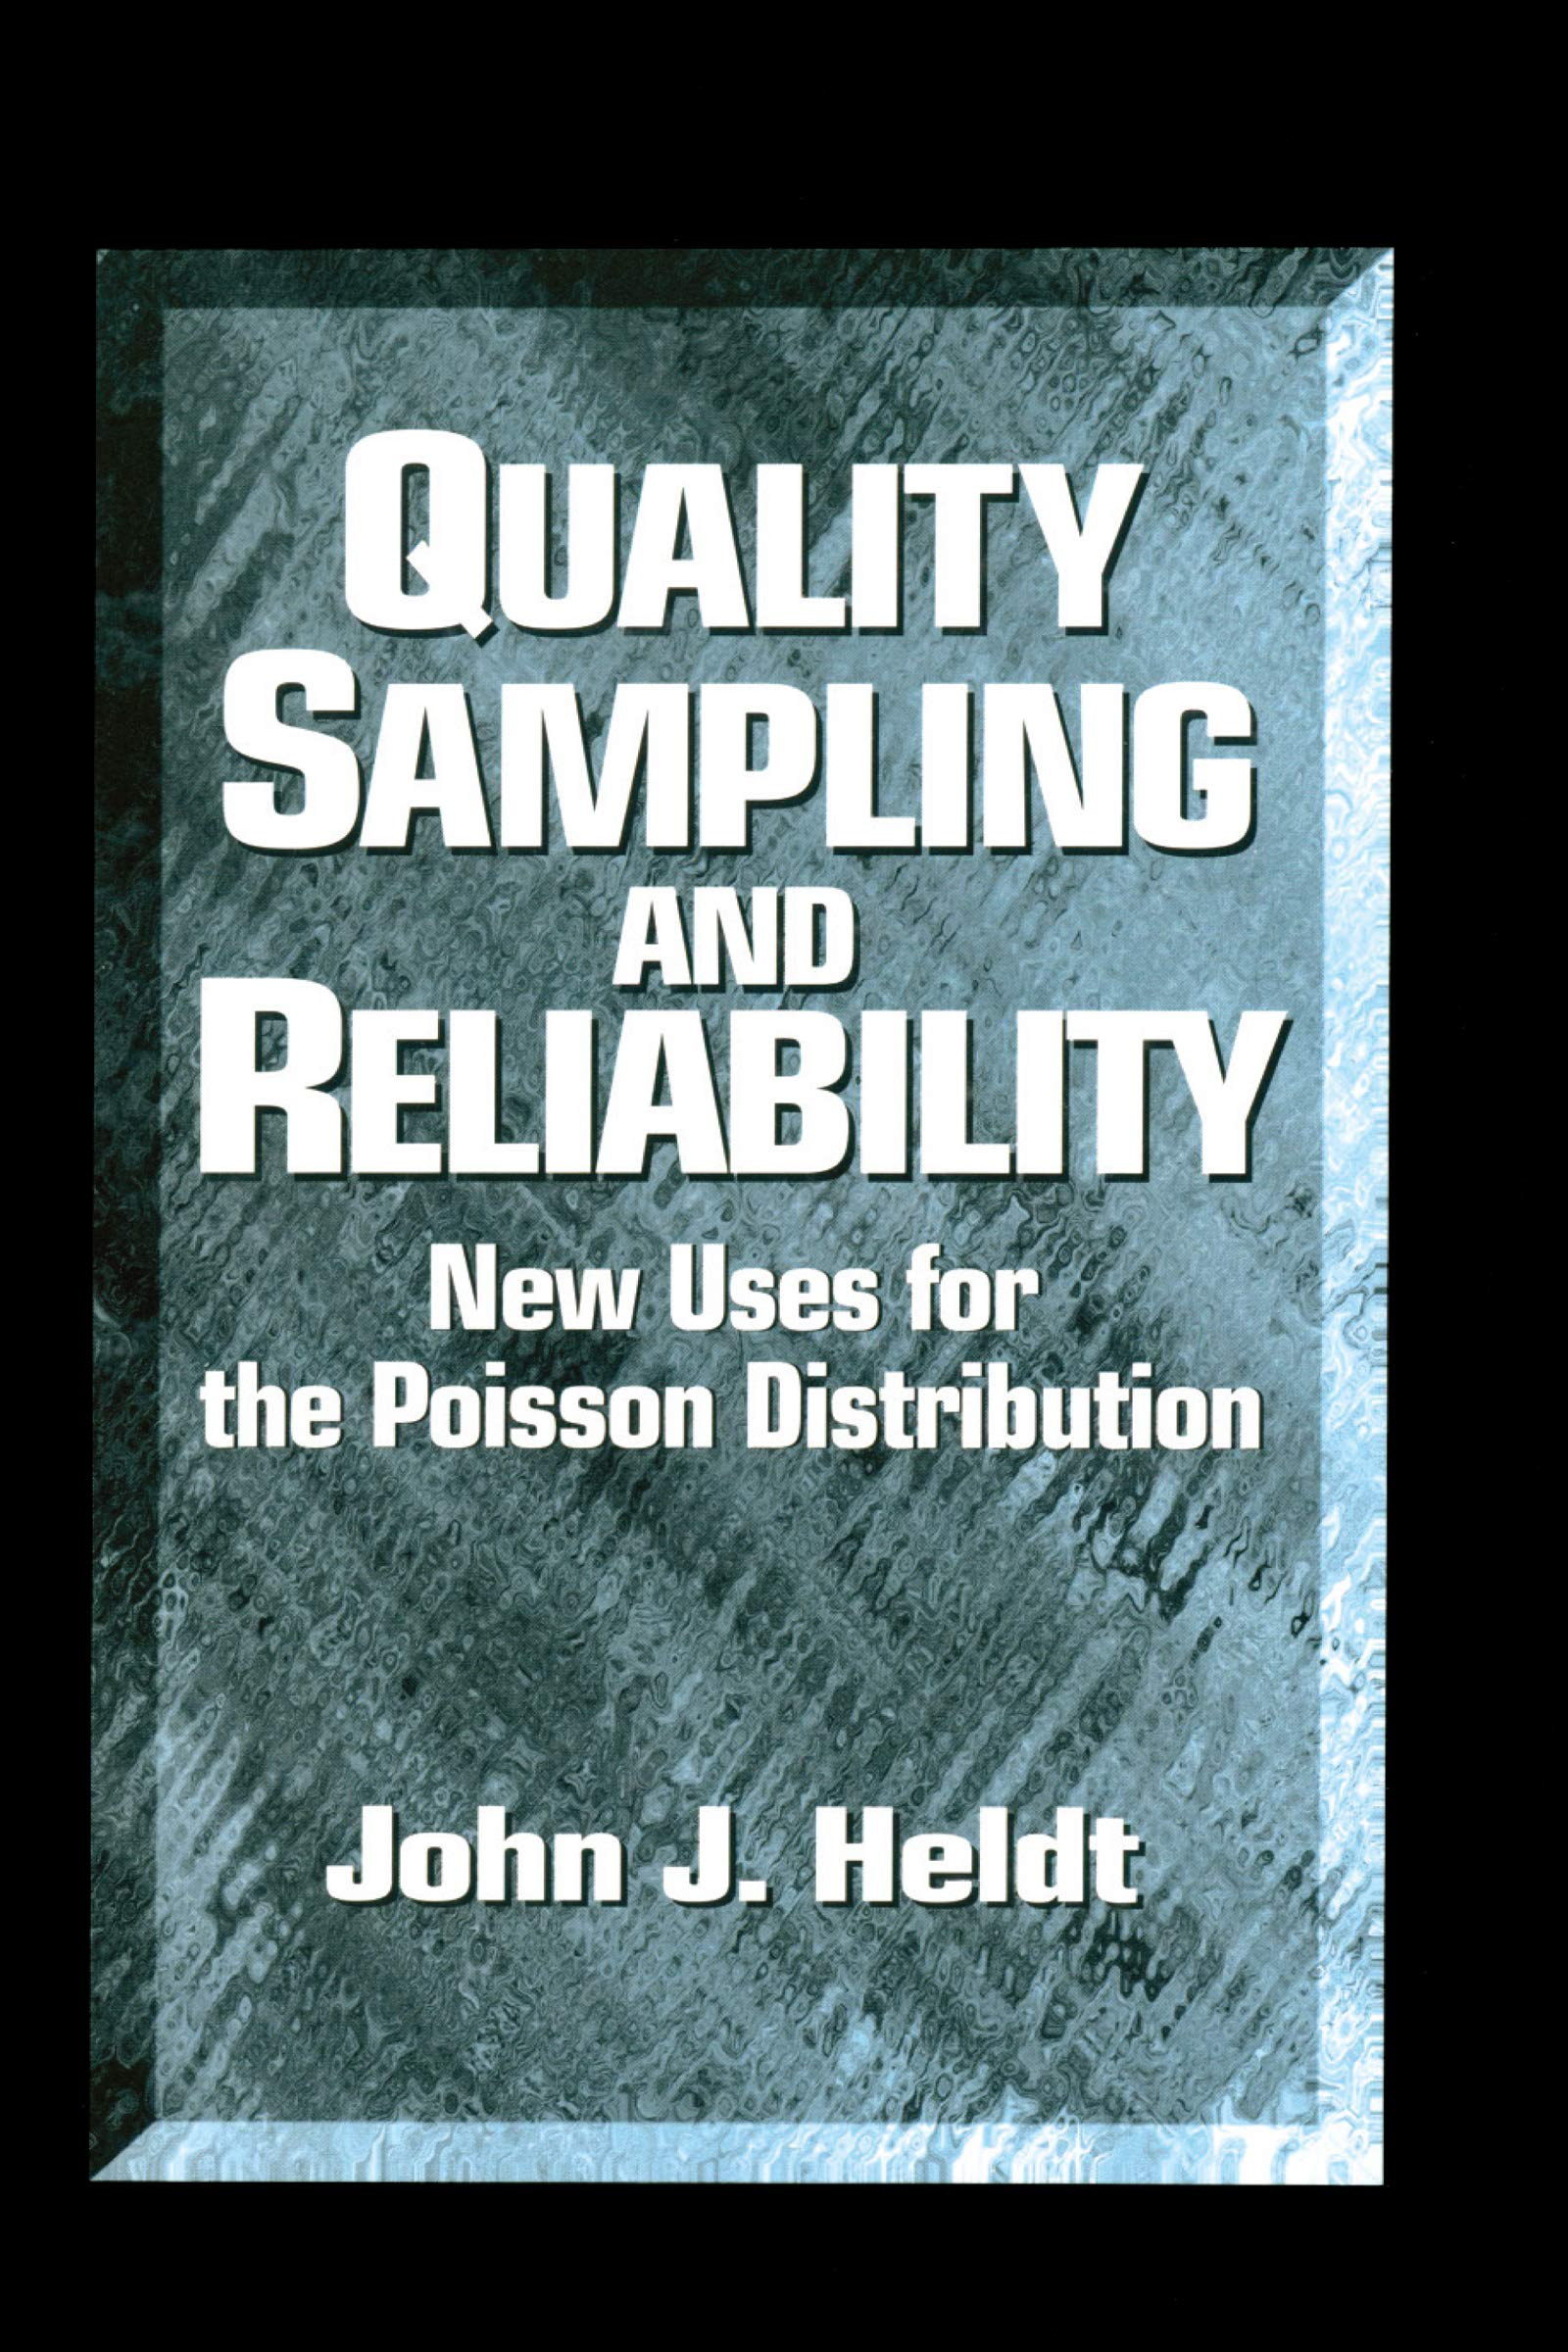 Quality Sampling and Reliability: New Uses for the Poisson Distribution